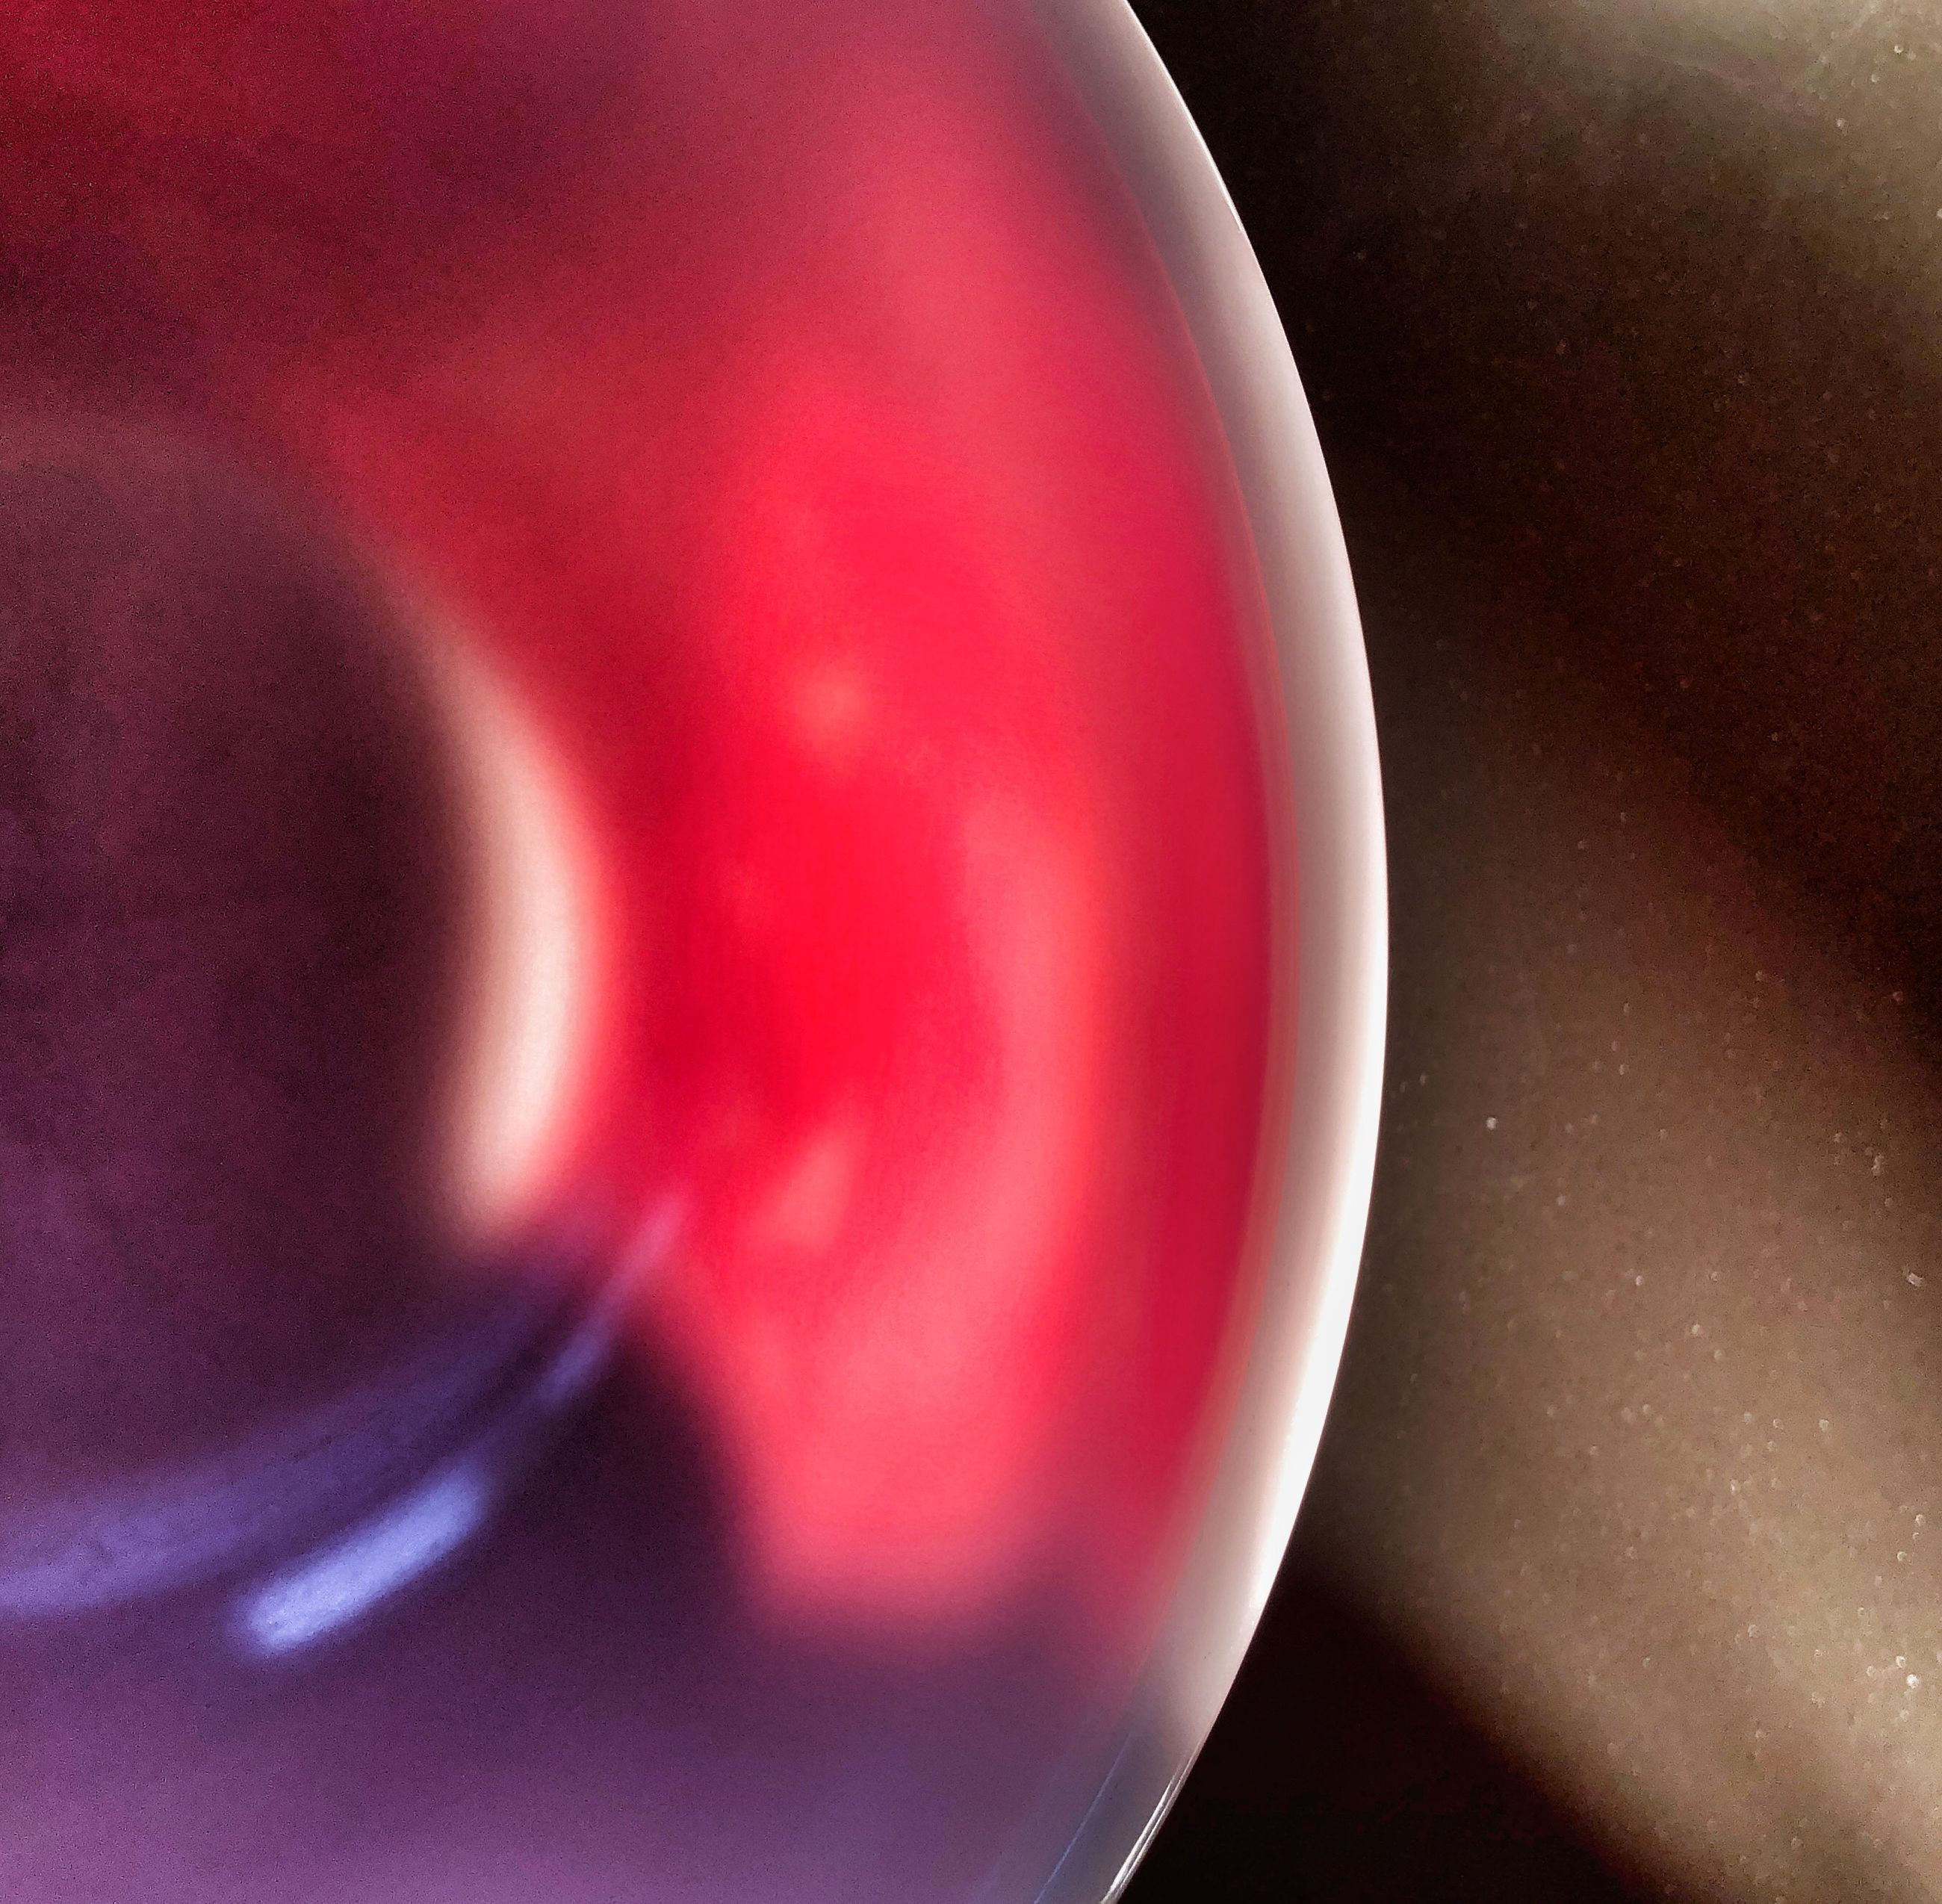 close-up, no people, indoors, red, still life, technology, food and drink, cup, detail, mug, refreshment, shape, high angle view, extreme close-up, motion, single object, pink color, drink, abstract, science, crockery